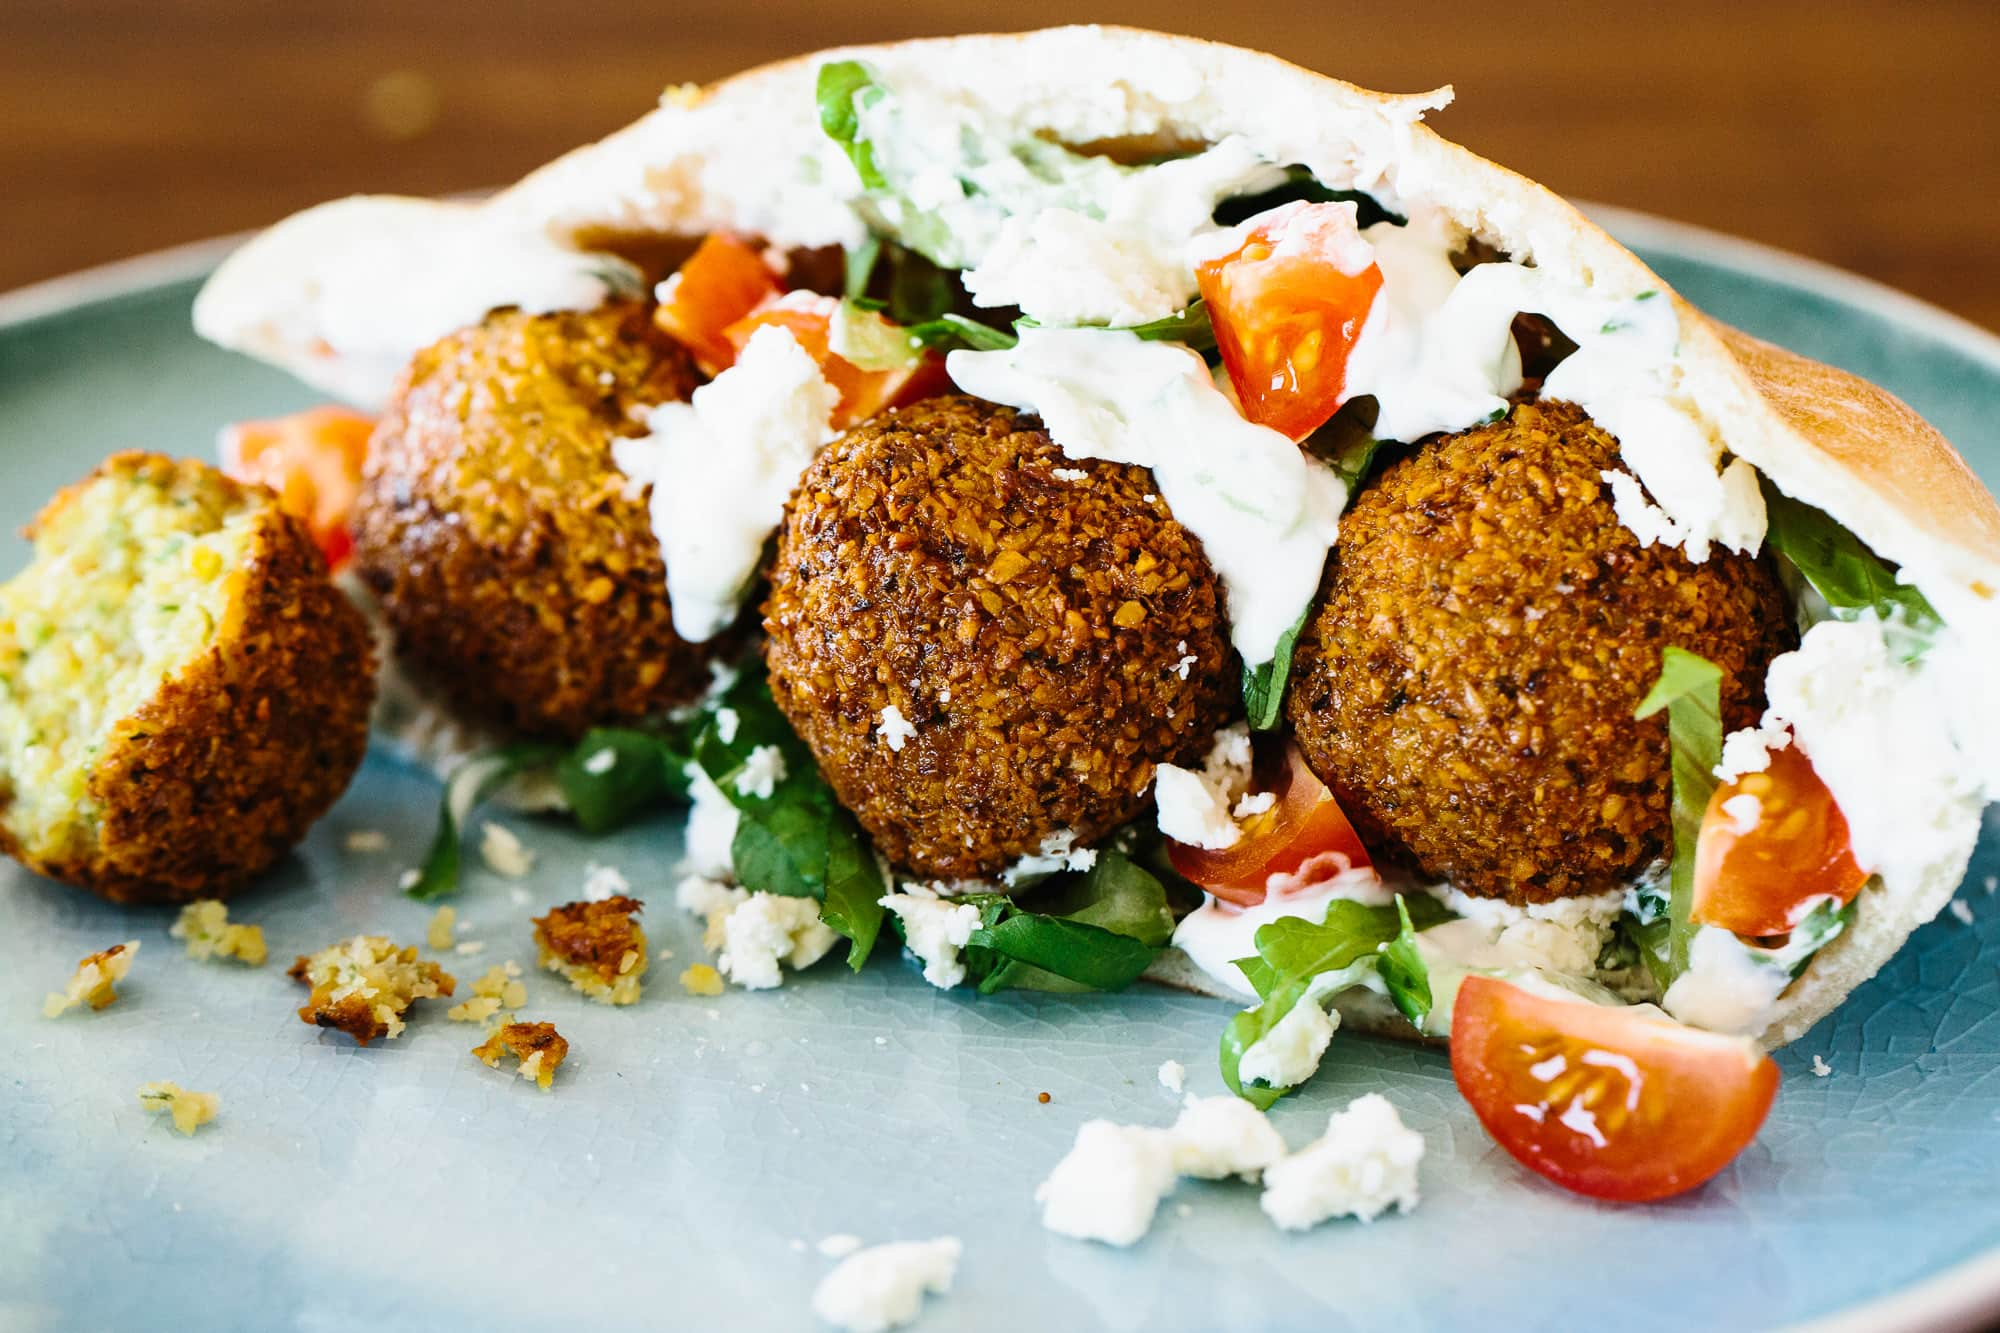 How To Make the Best Falafel at Home | Kitchn